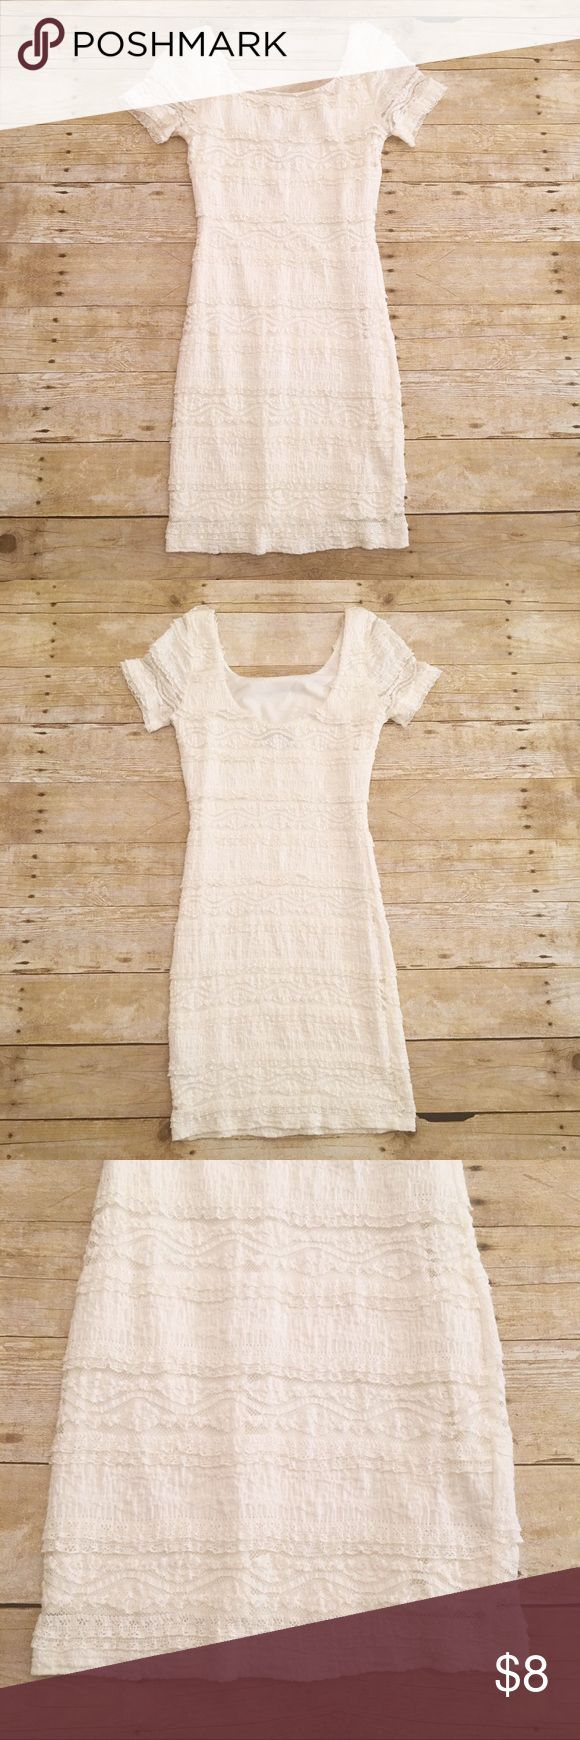 Off white lace Forever 21 body con dress, SP Very good condition off white lace dress by forever 21. Size small petite. Very pretty! Would look amazing with those red high heels! Approximately 33 inches in length with a bust of approximately 14 inches. Forever 21 Dresses Midi